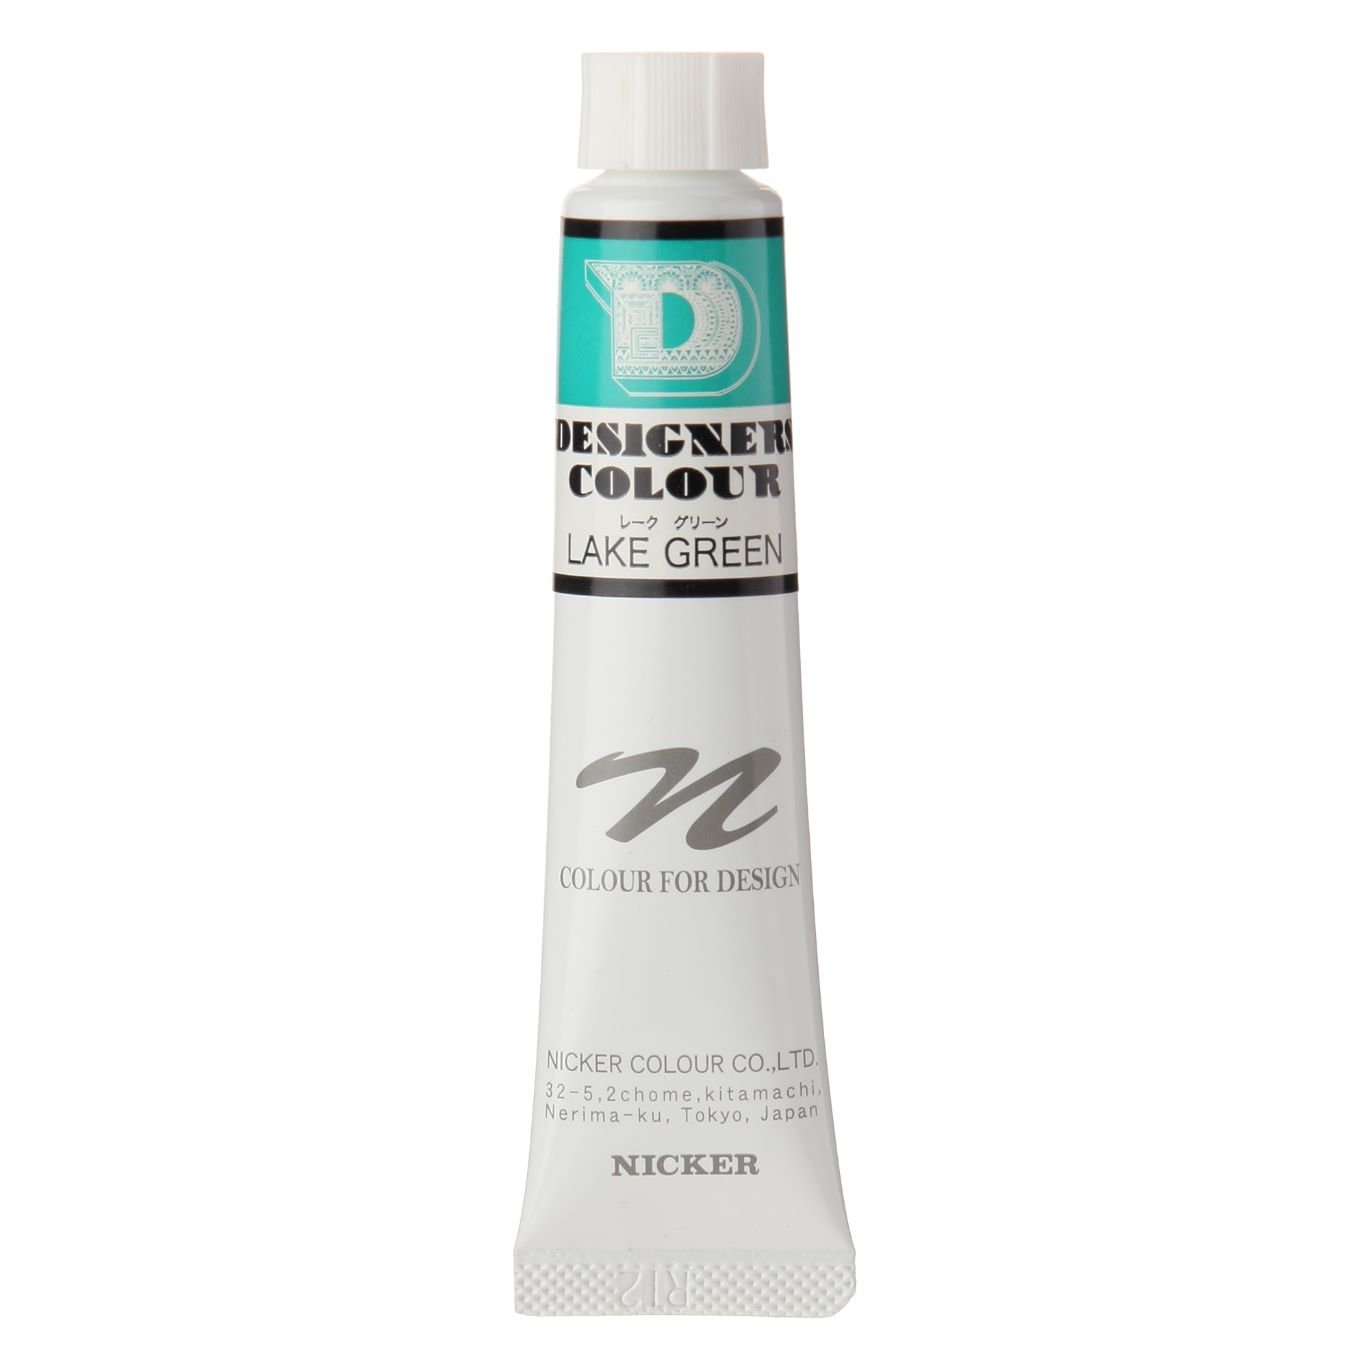 DESIGNERS COLOUR 20ml 587 LAKE GREEN